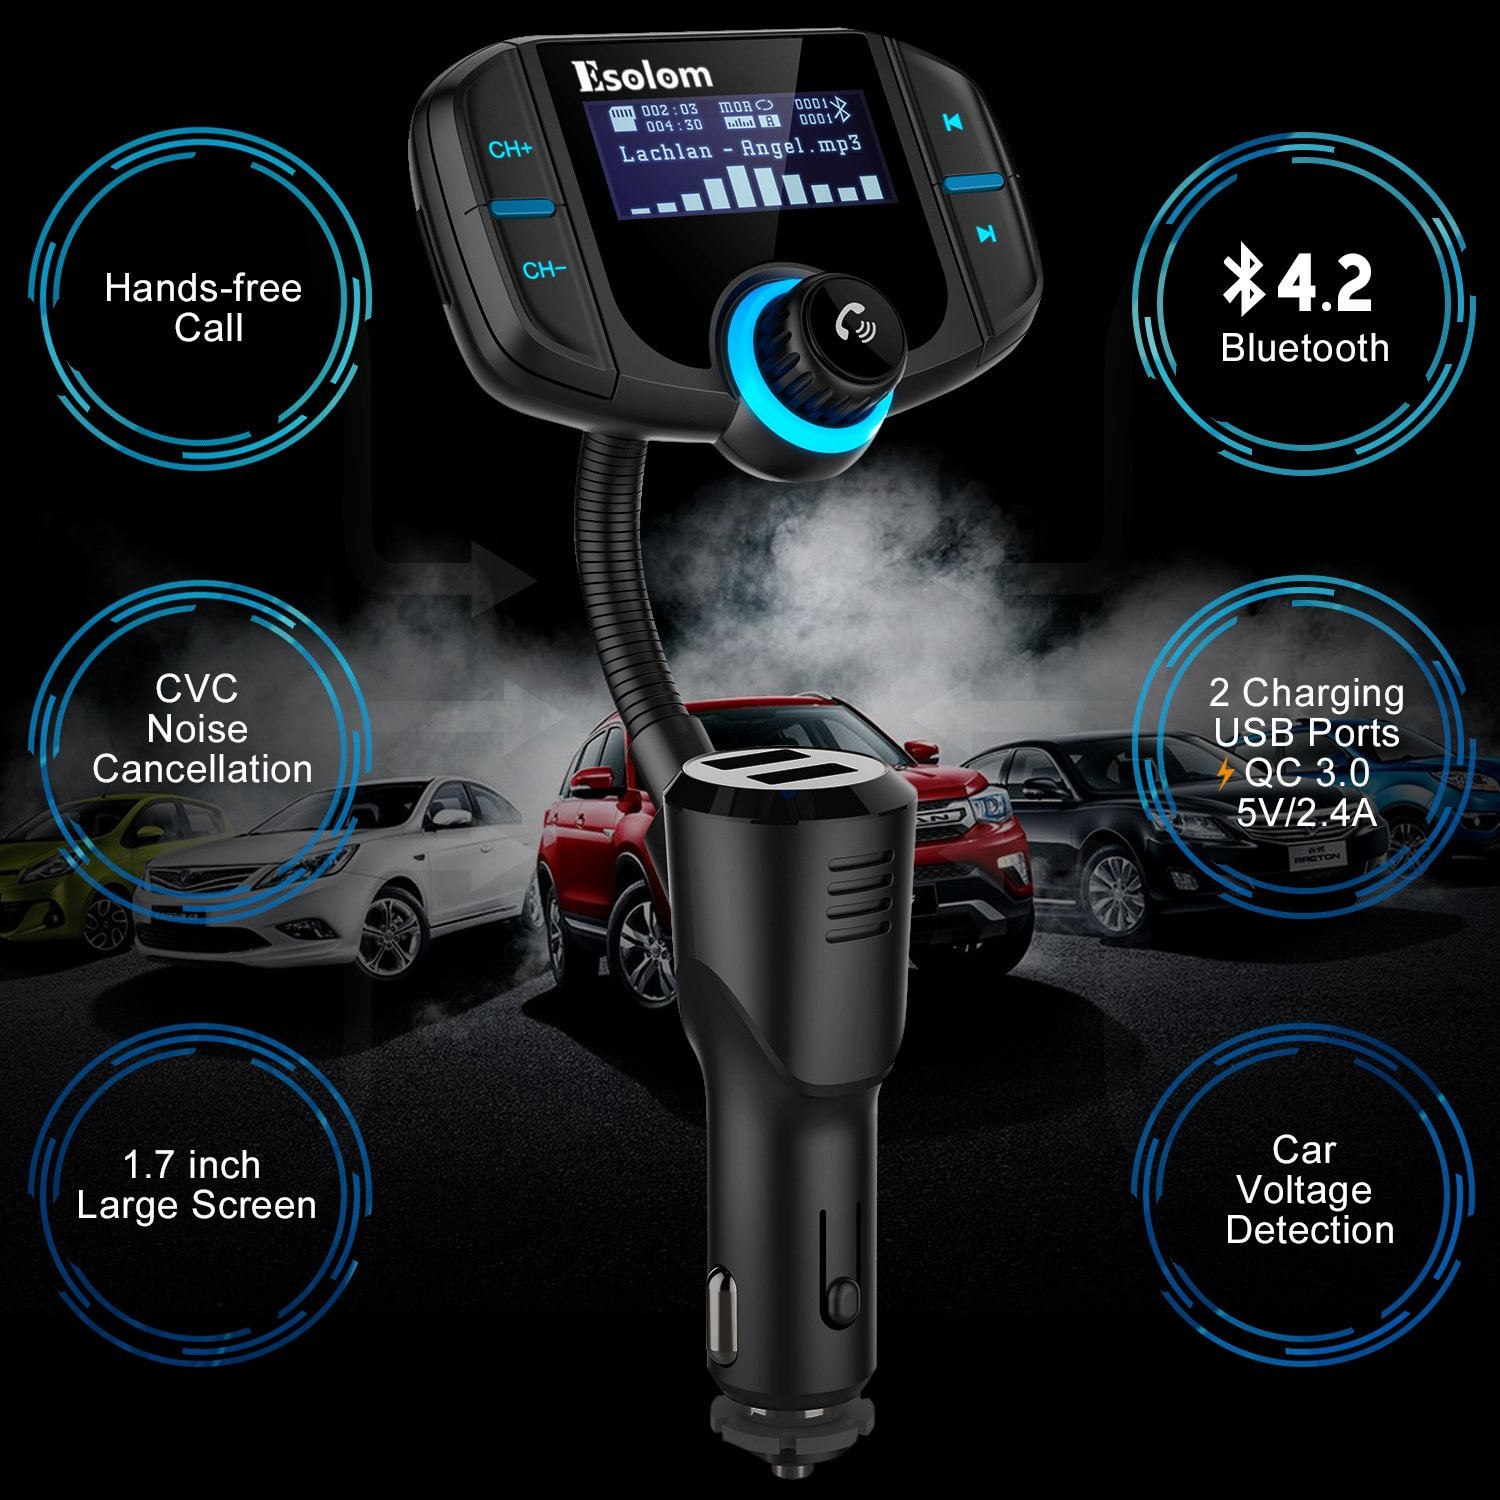 Bluetooth FM Transmitter for Car MP3 Player Hands-Free Calling Car Kits with Dual USB Port Car Charger 5V//2.4A/&1A styleB BT70 Support Voltage Detection ESOLOM Wireless in-Car FM Radio Adapter